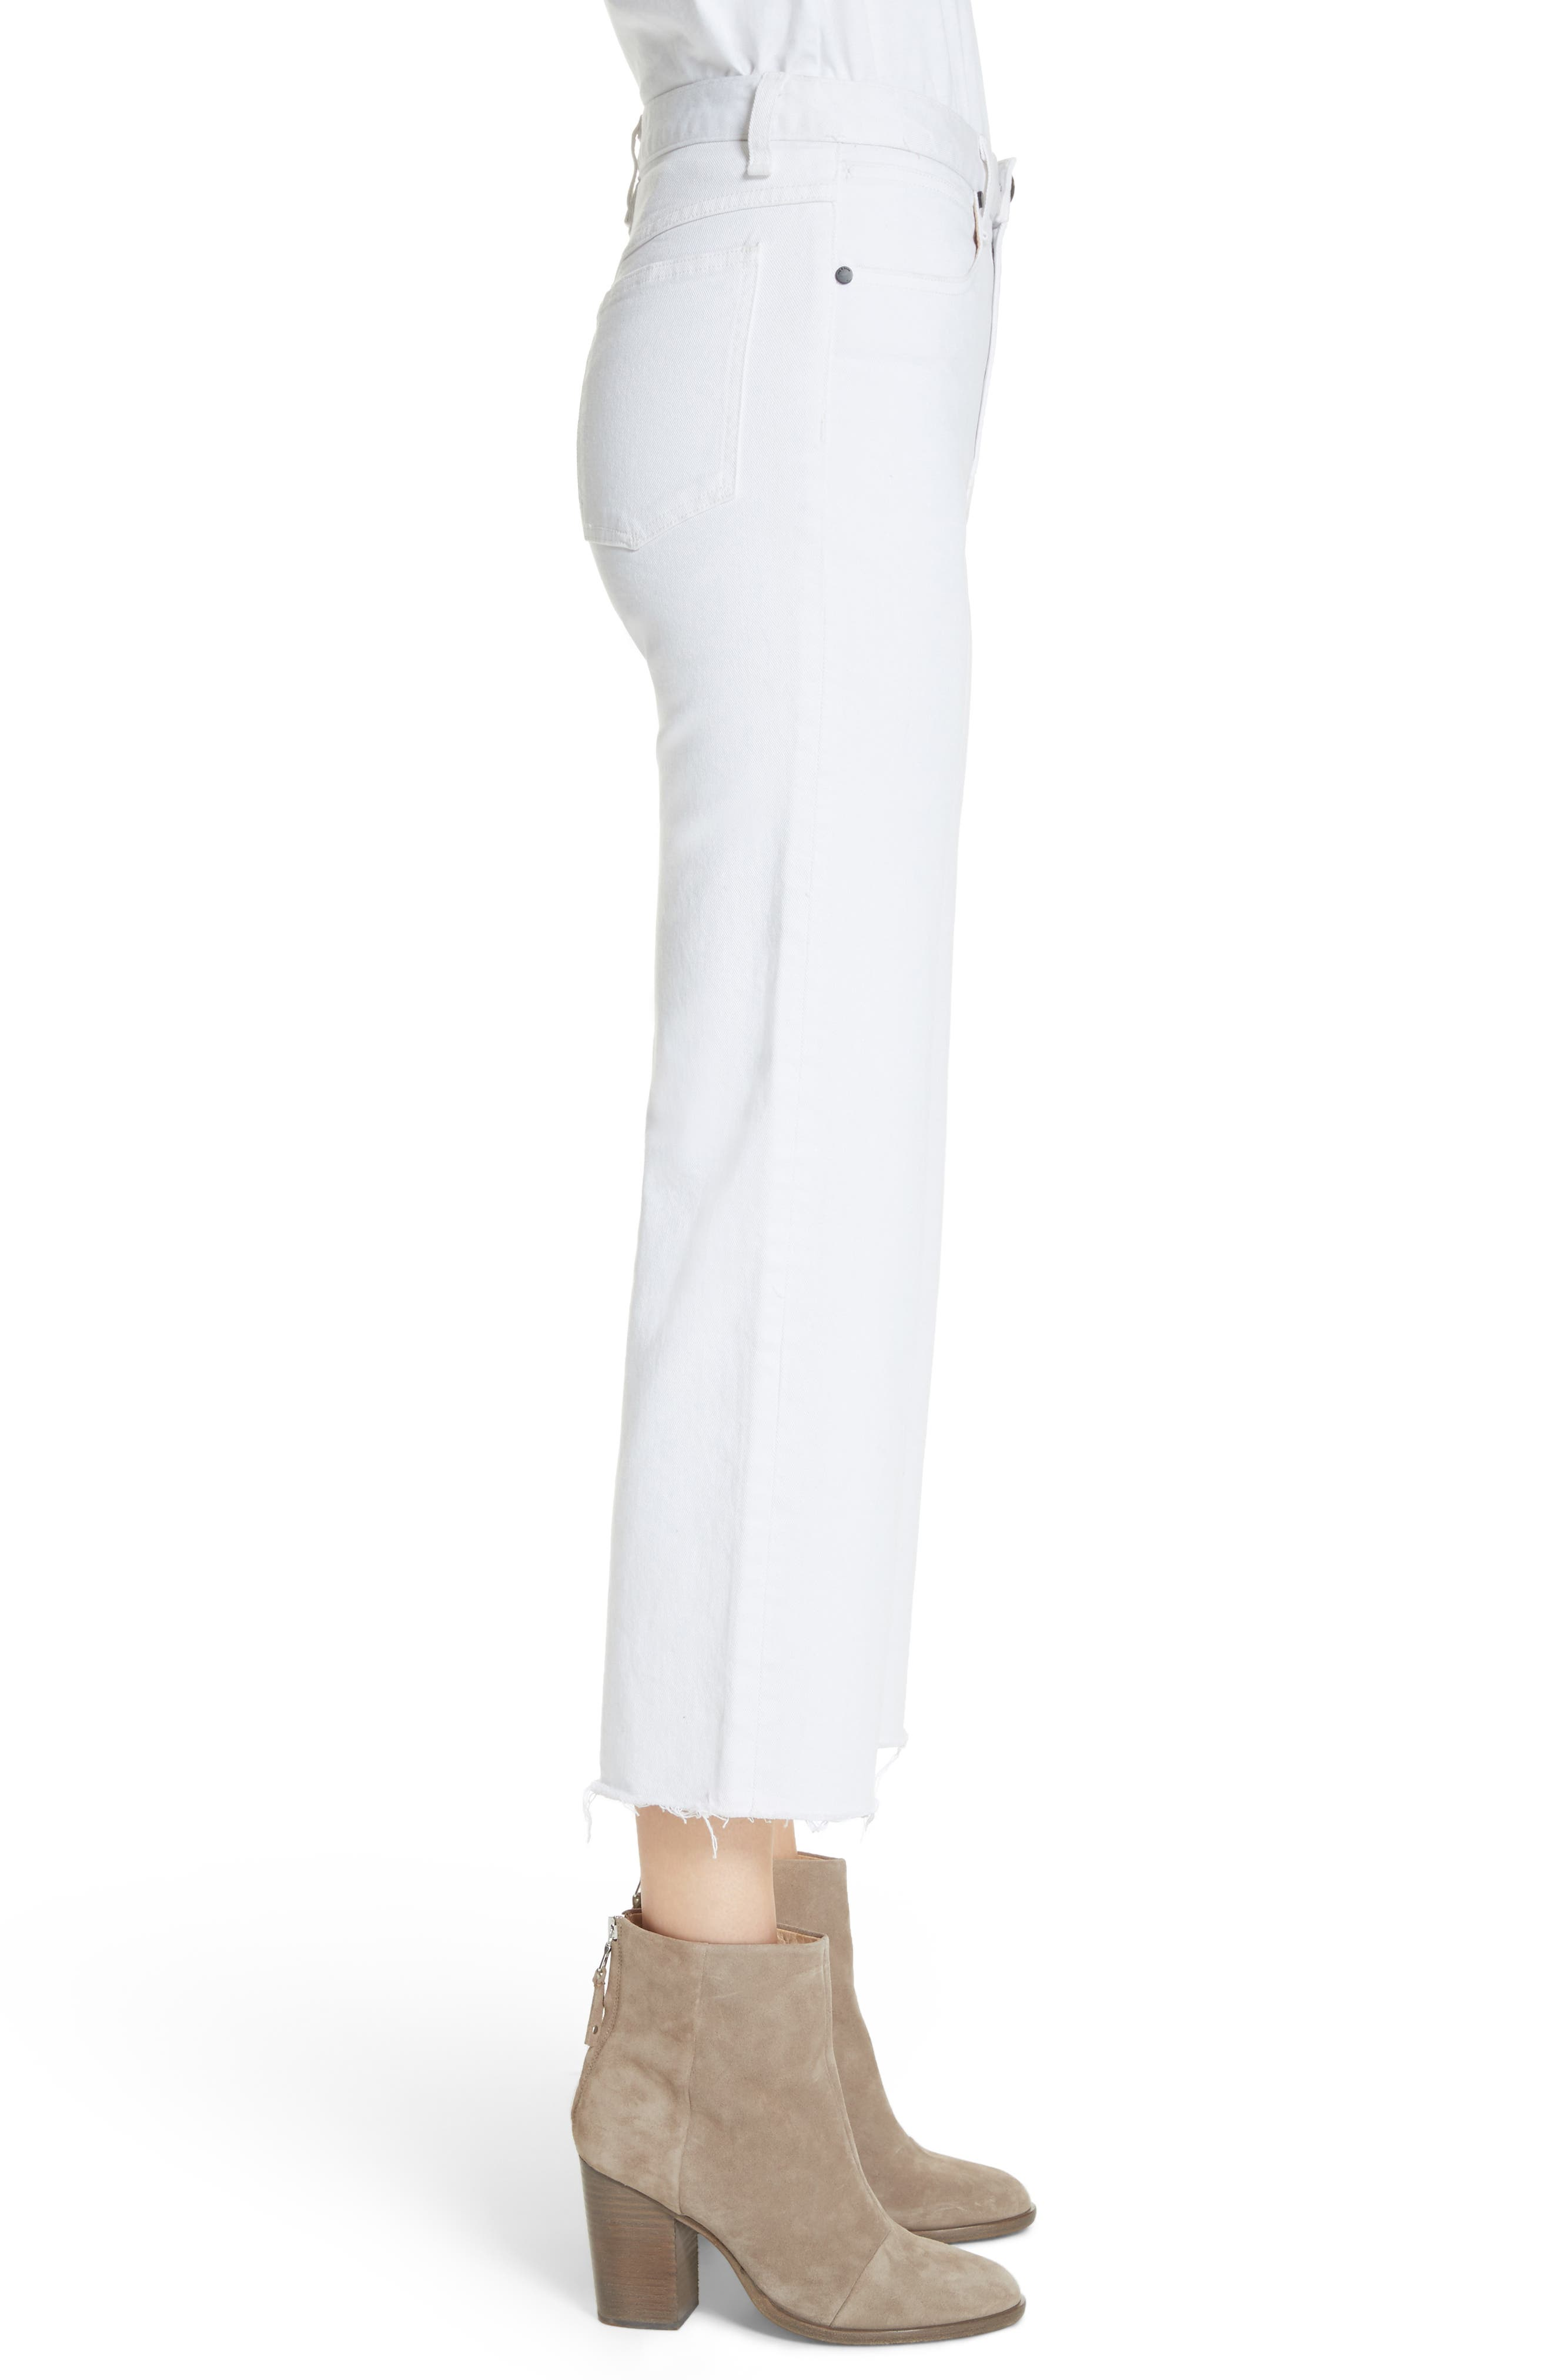 Justine High Waist Ankle Wide Leg Trouser Jeans,                             Alternate thumbnail 3, color,                             White